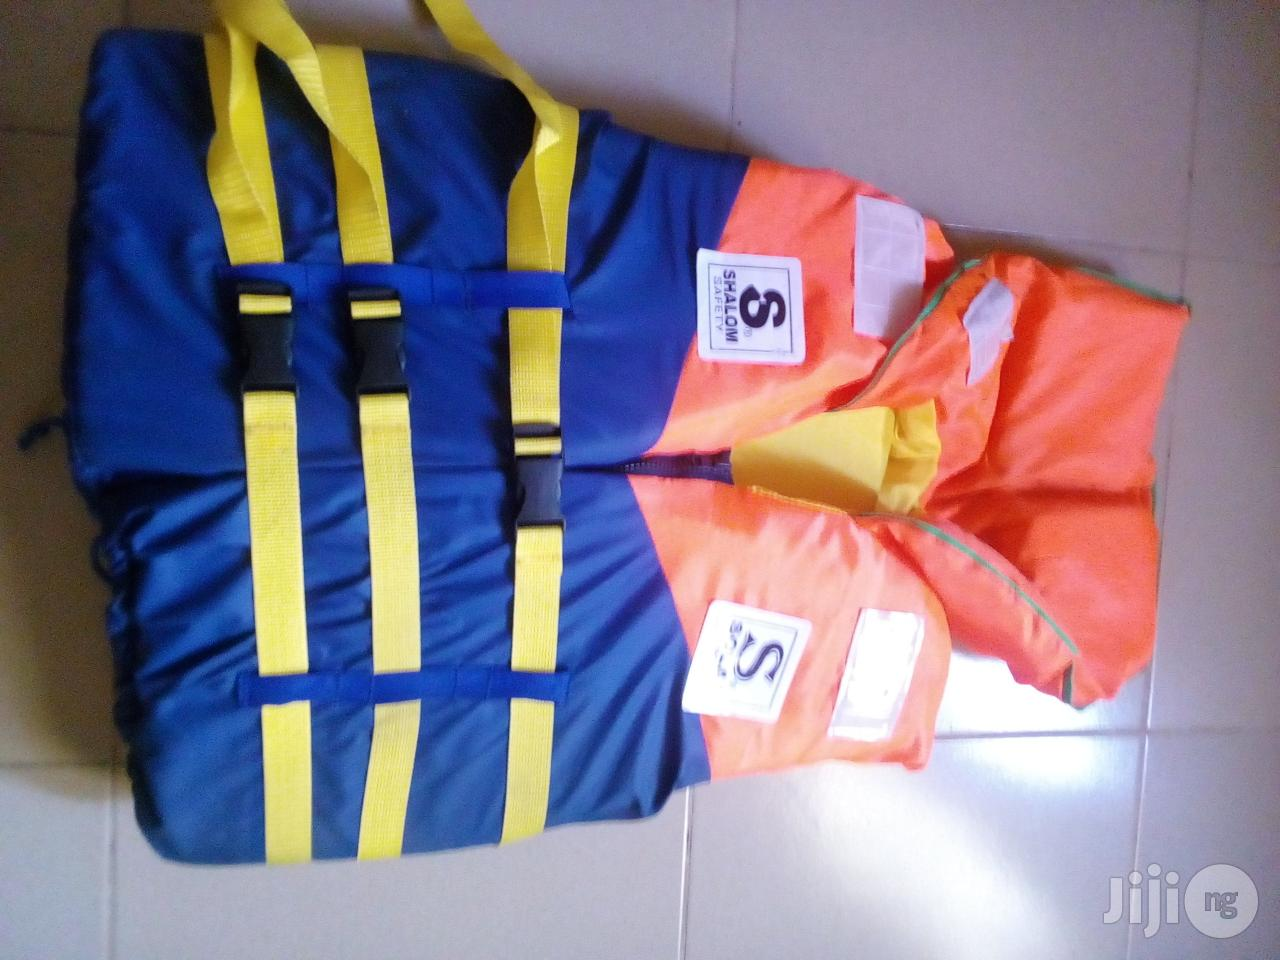 Life Jacket   Safetywear & Equipment for sale in Apapa, Lagos State, Nigeria